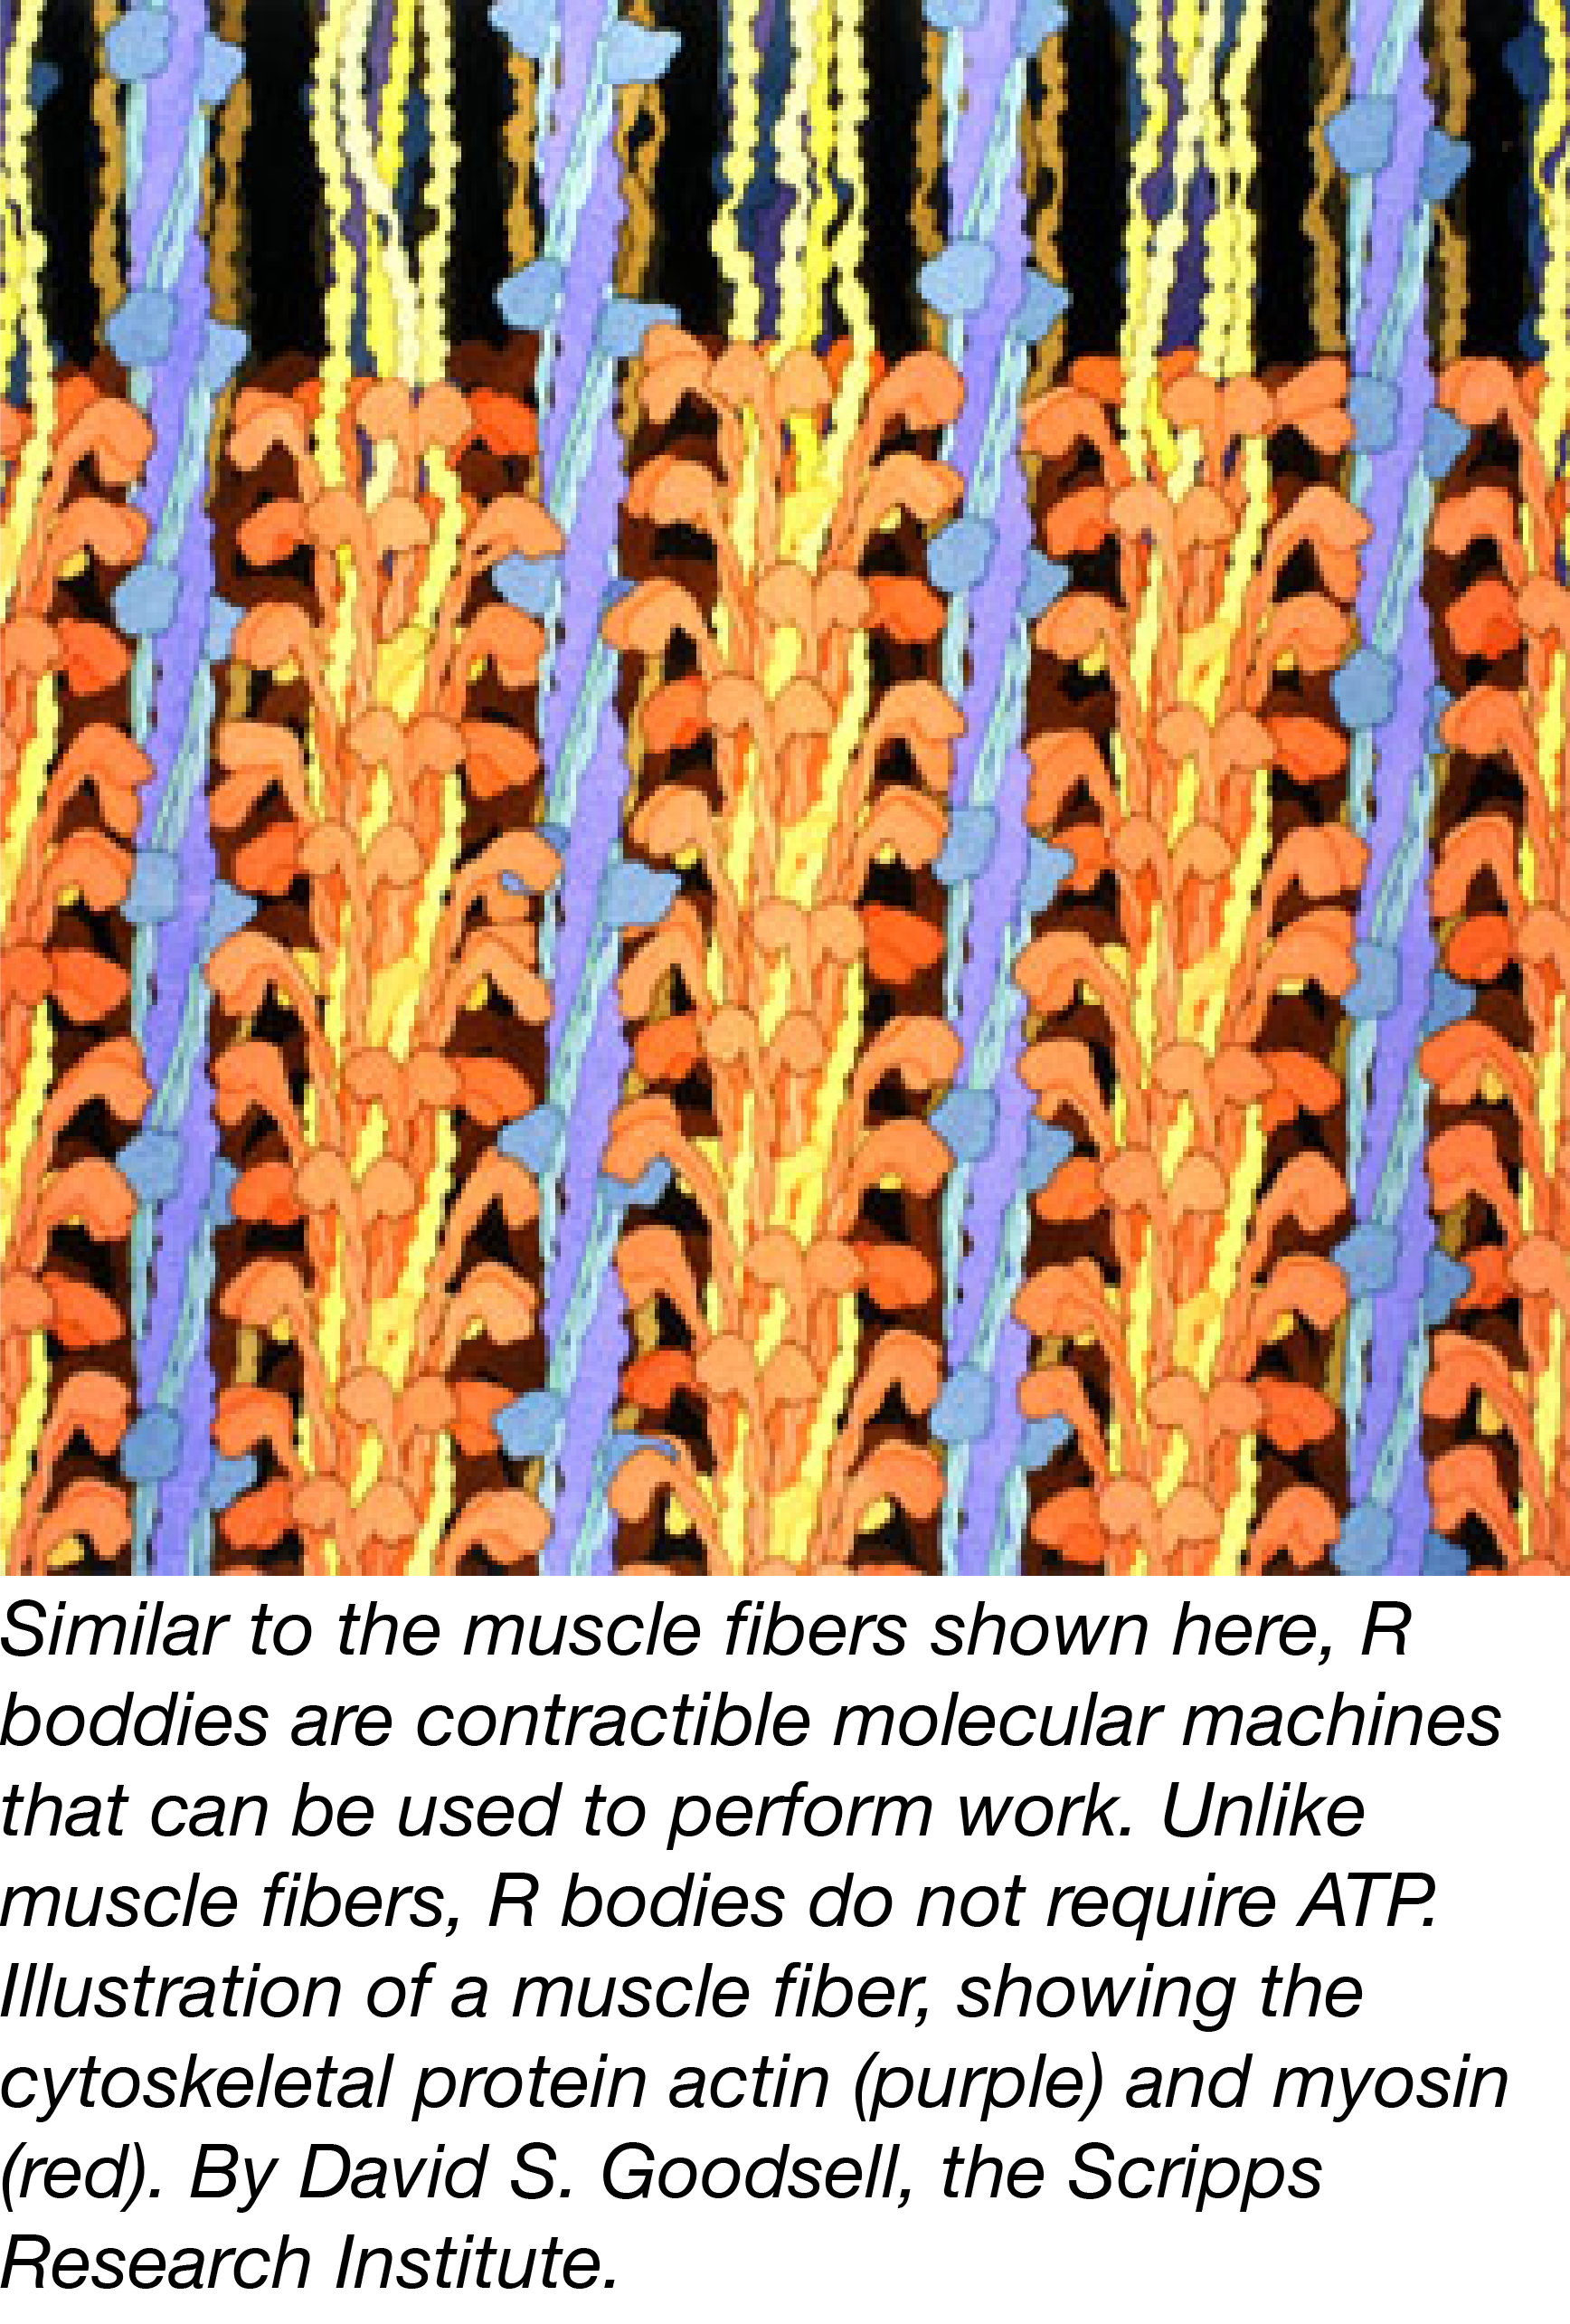 2016_4_11_R_Body_Muscle_Fiber_JessicaPolka.png